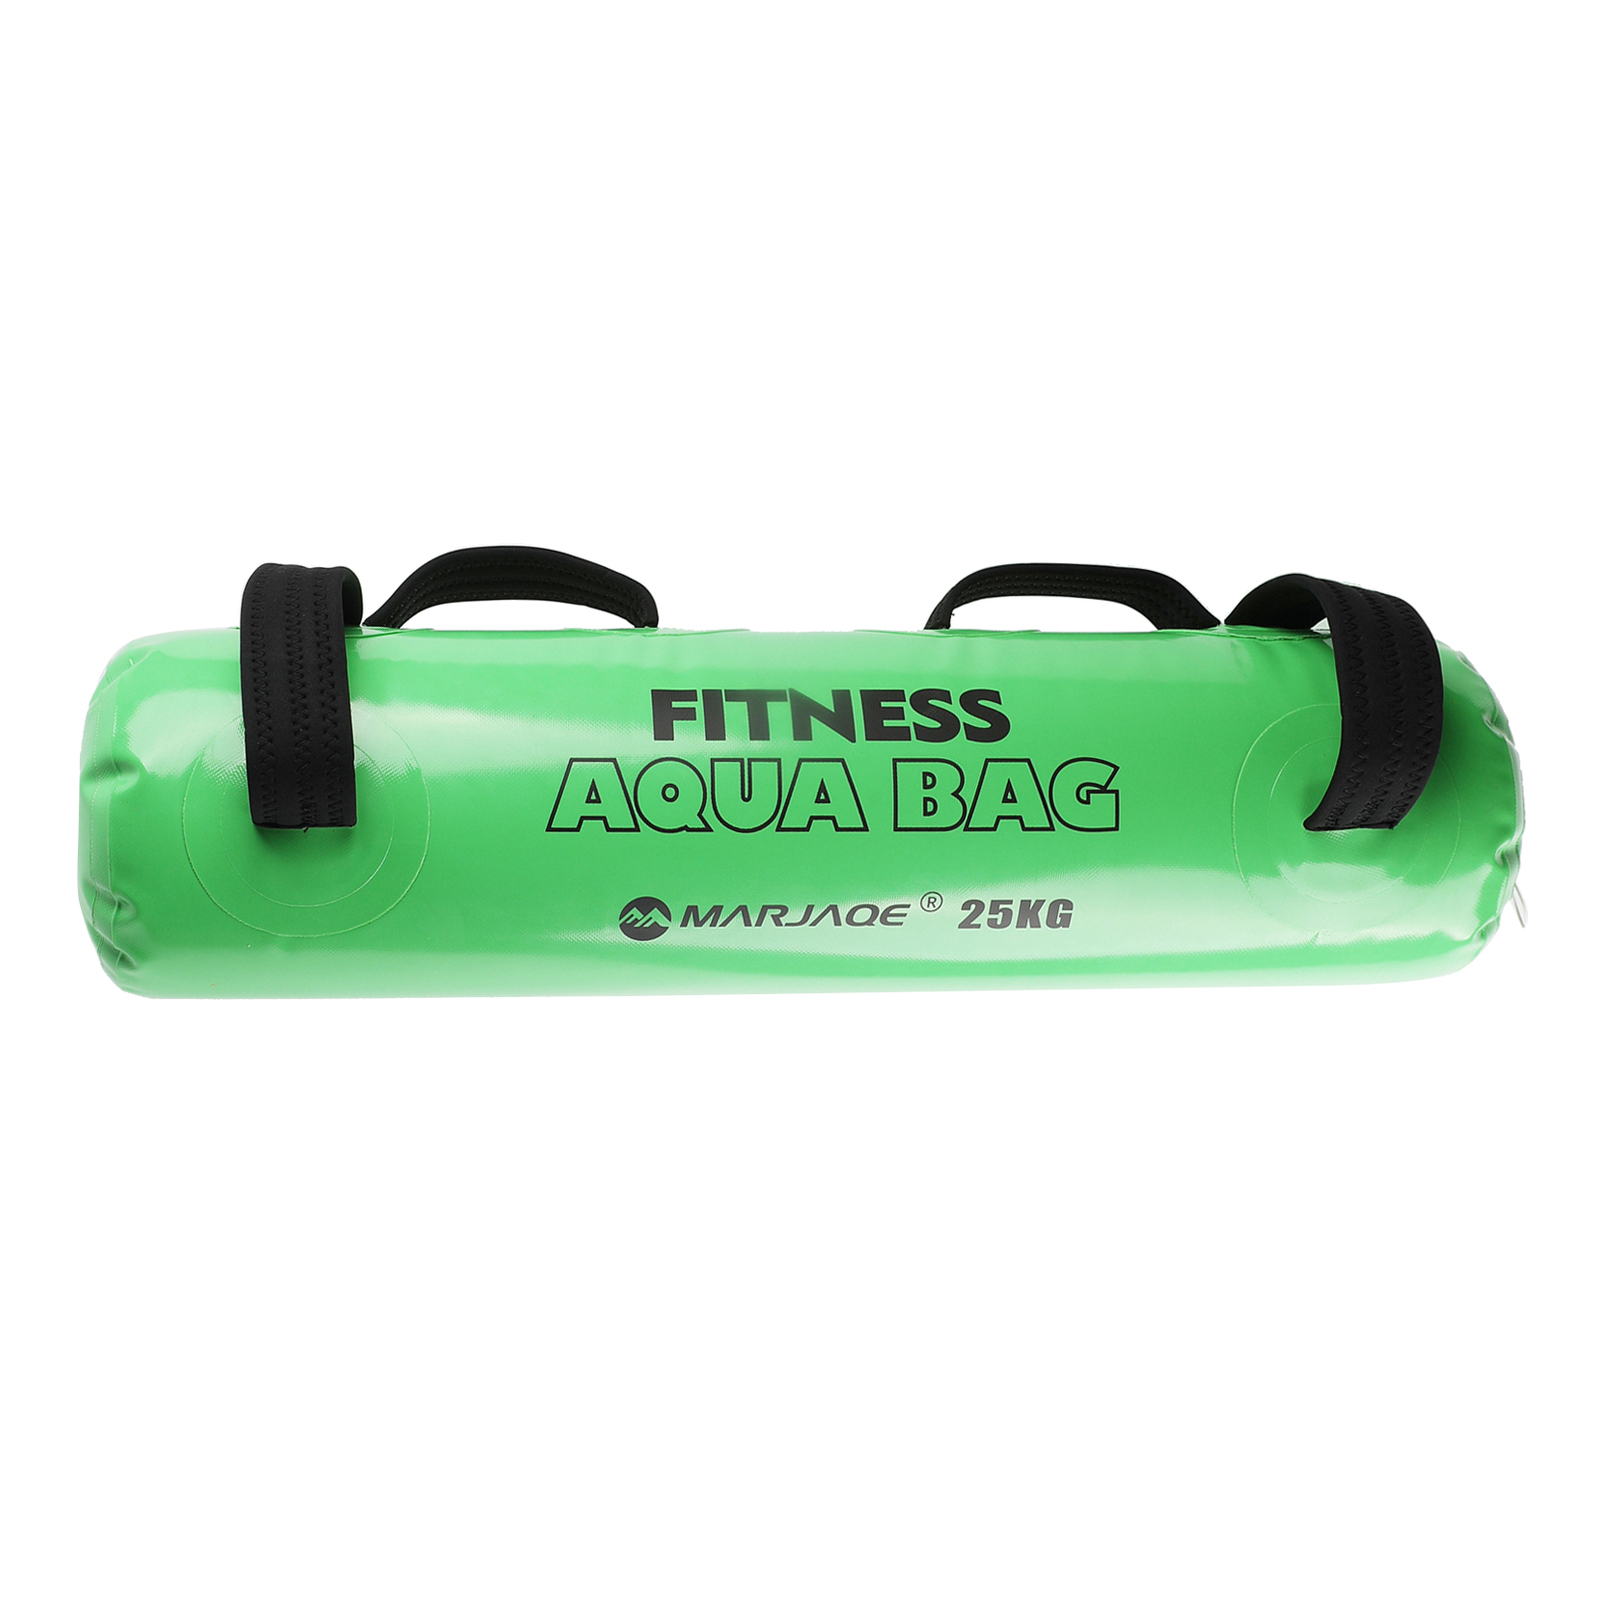 Sandbags for Fitness, Workout Sand Bag,Water Aqua Bag Training Weight Bag Fitness Equipment for Workout Weights Training